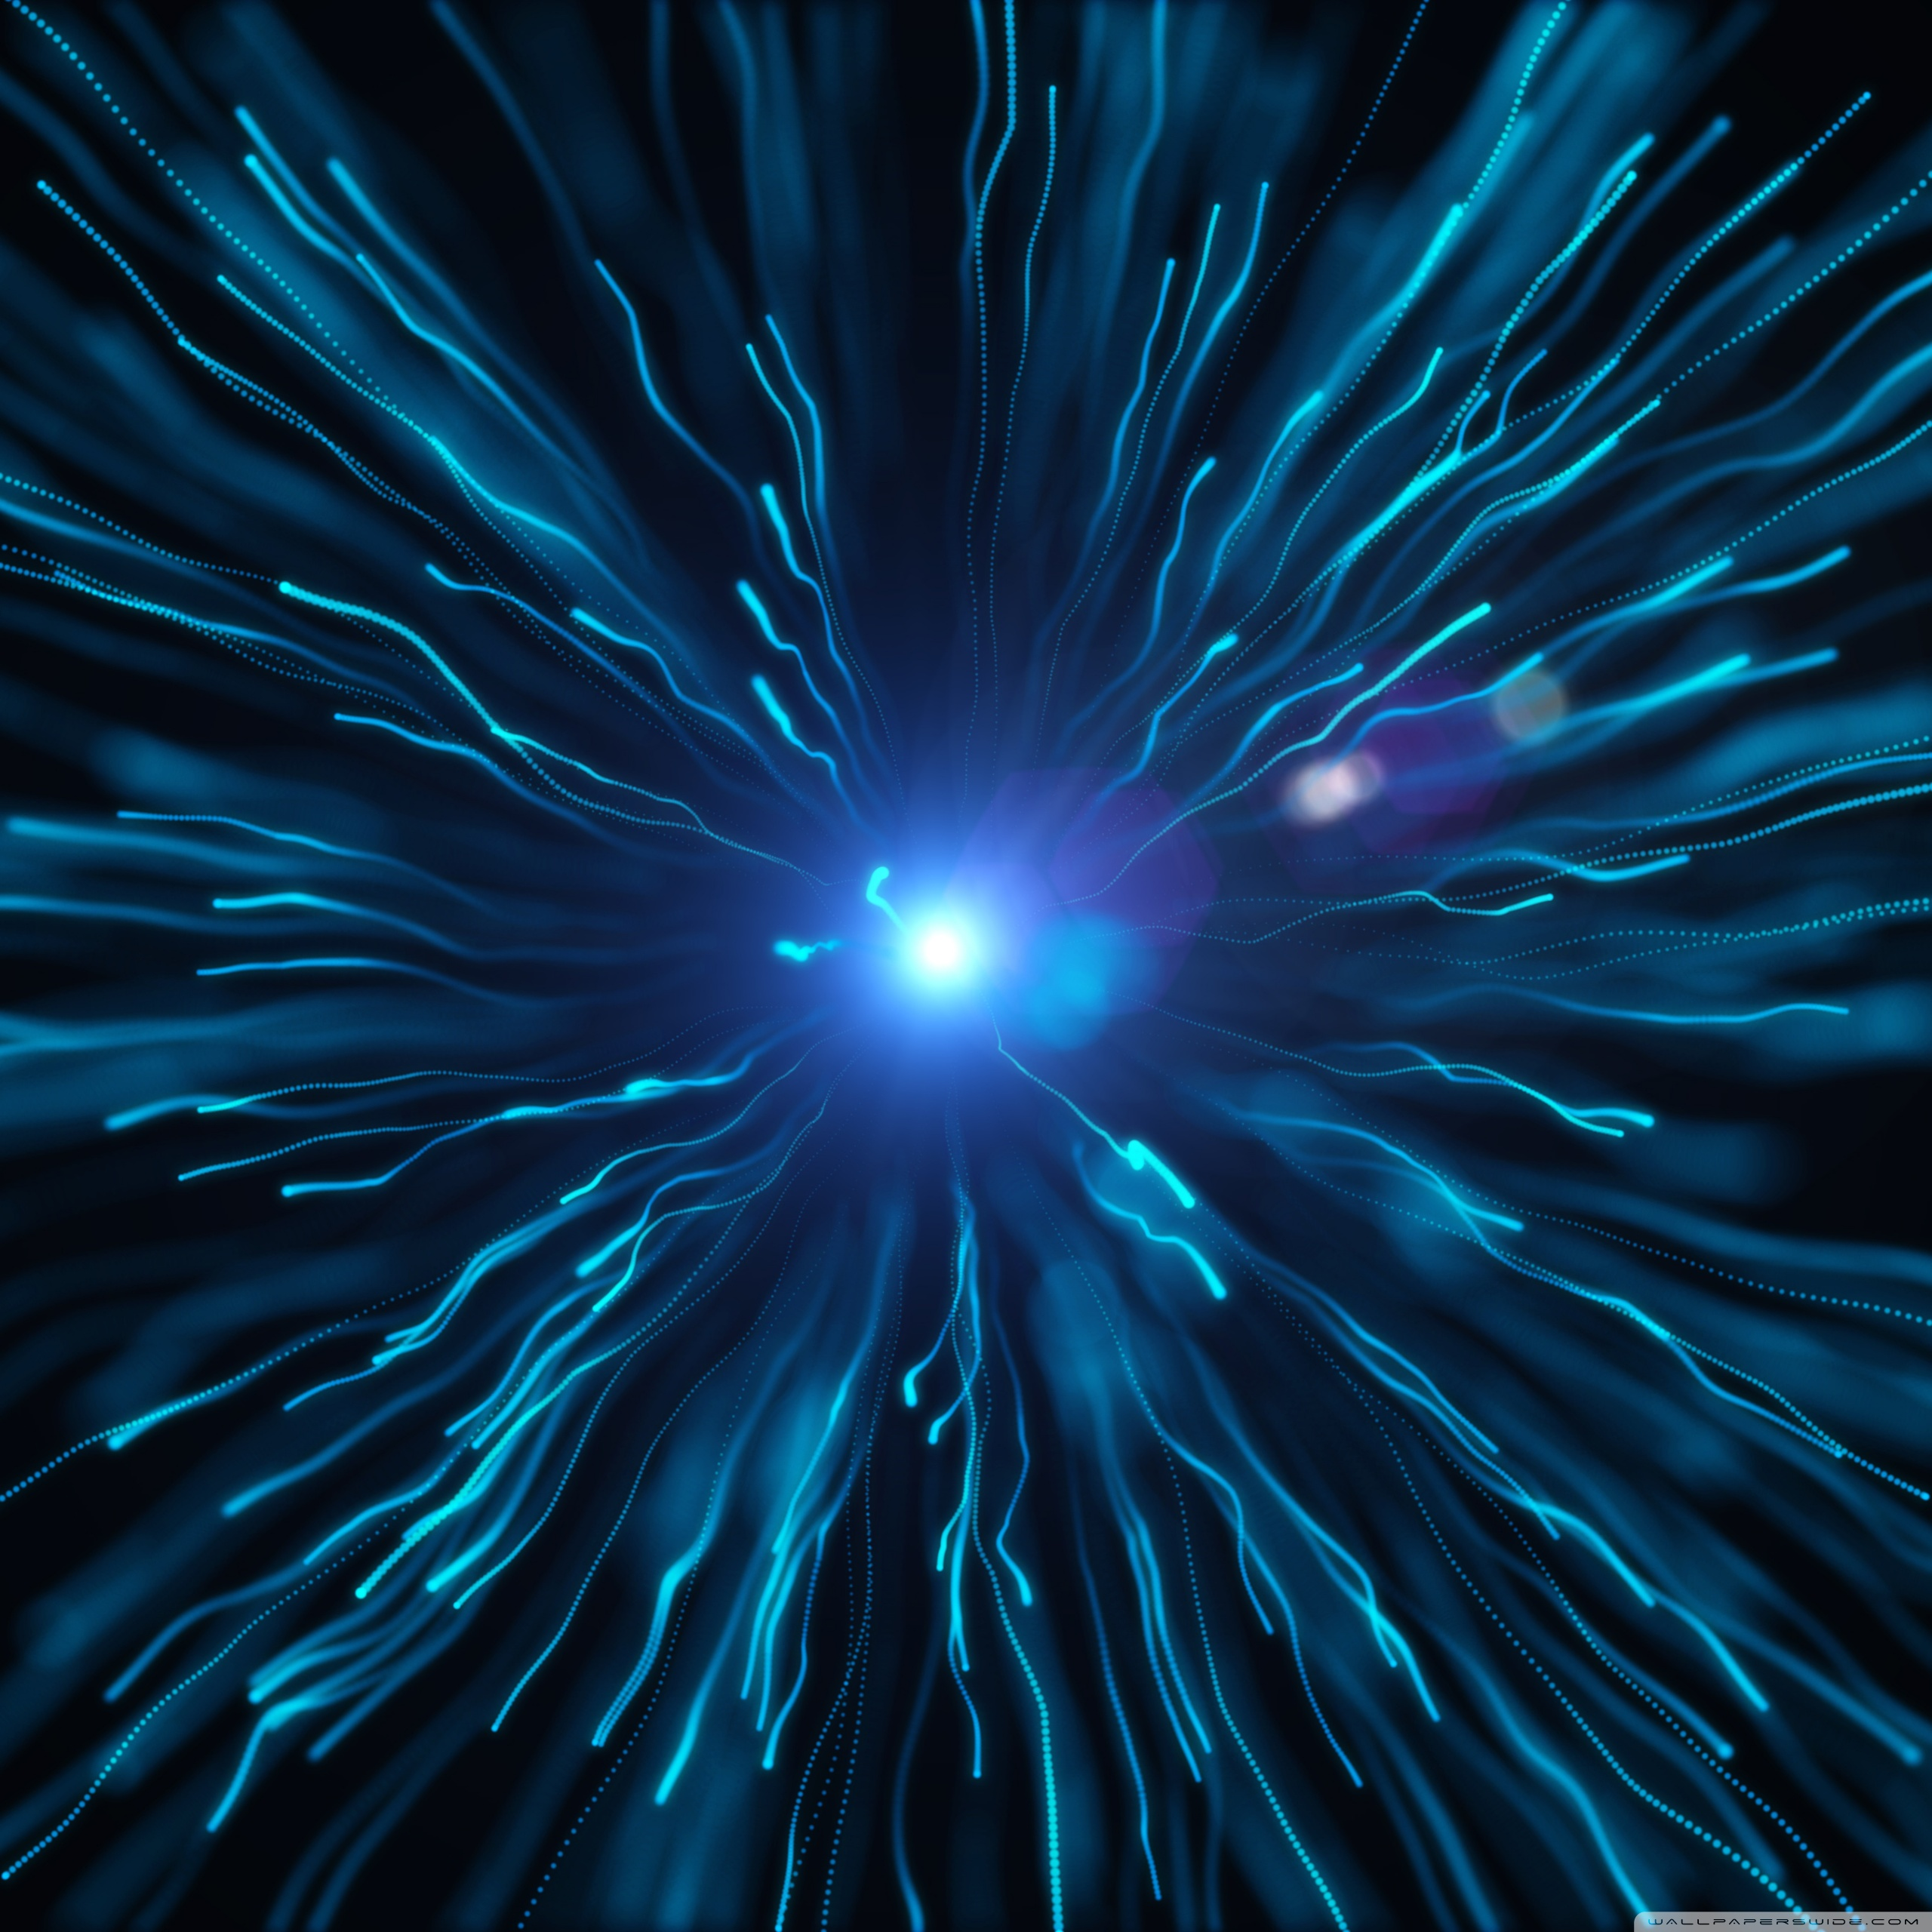 Samsung Galaxy S3 3d Wallpaper Free Download Particles Best 3d Wallpaper For Pc Android Amp Iphone